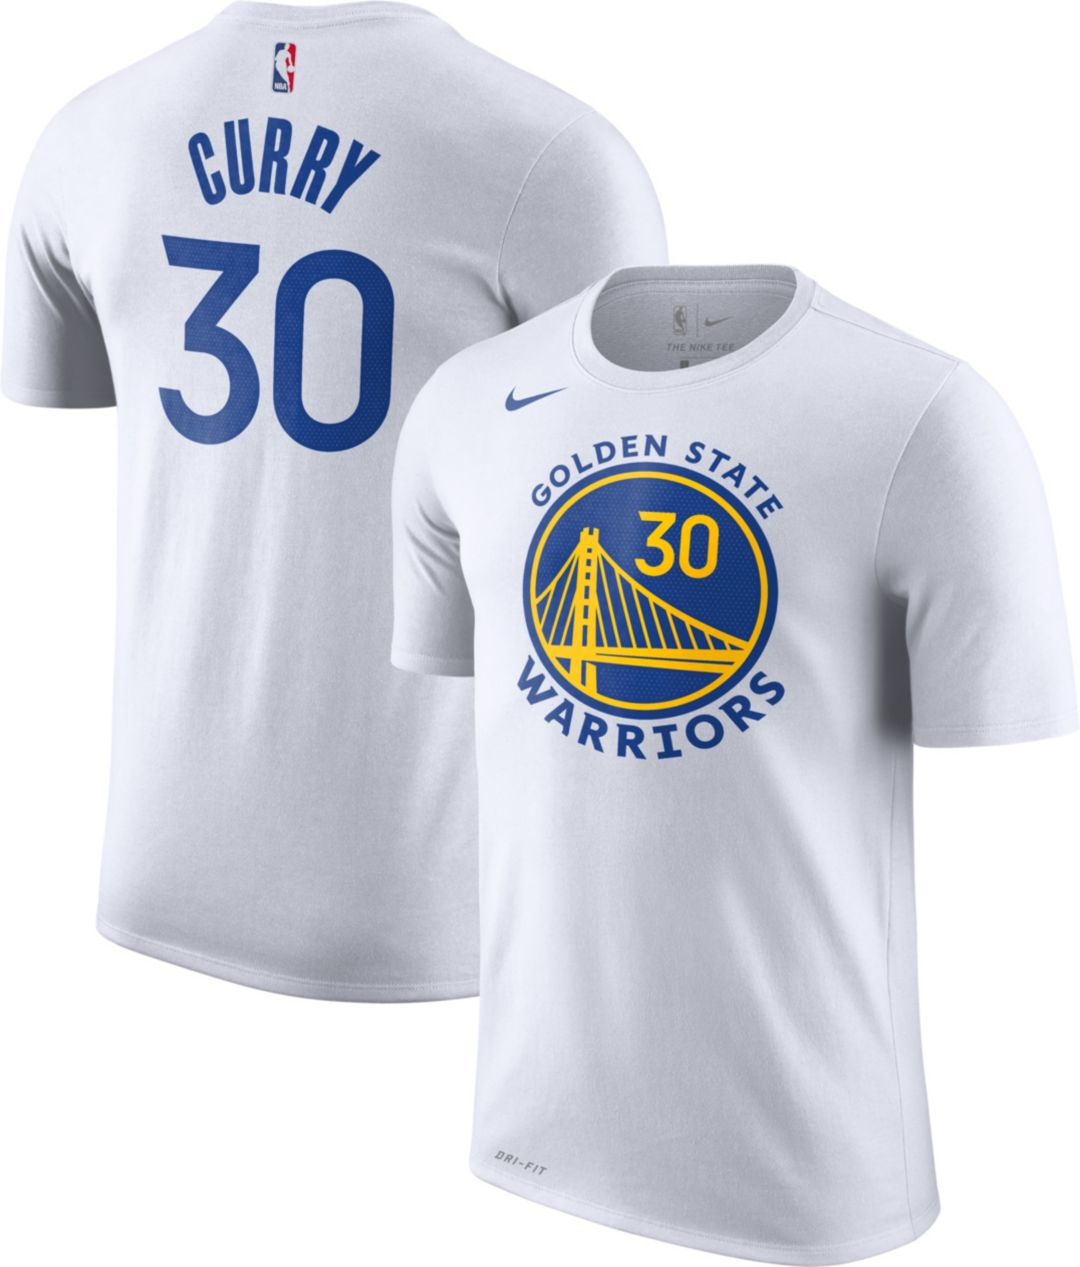 outlet store eb5e8 8101f Nike Youth Golden State Warriors Steph Curry #30 Dri-FIT White T-Shirt